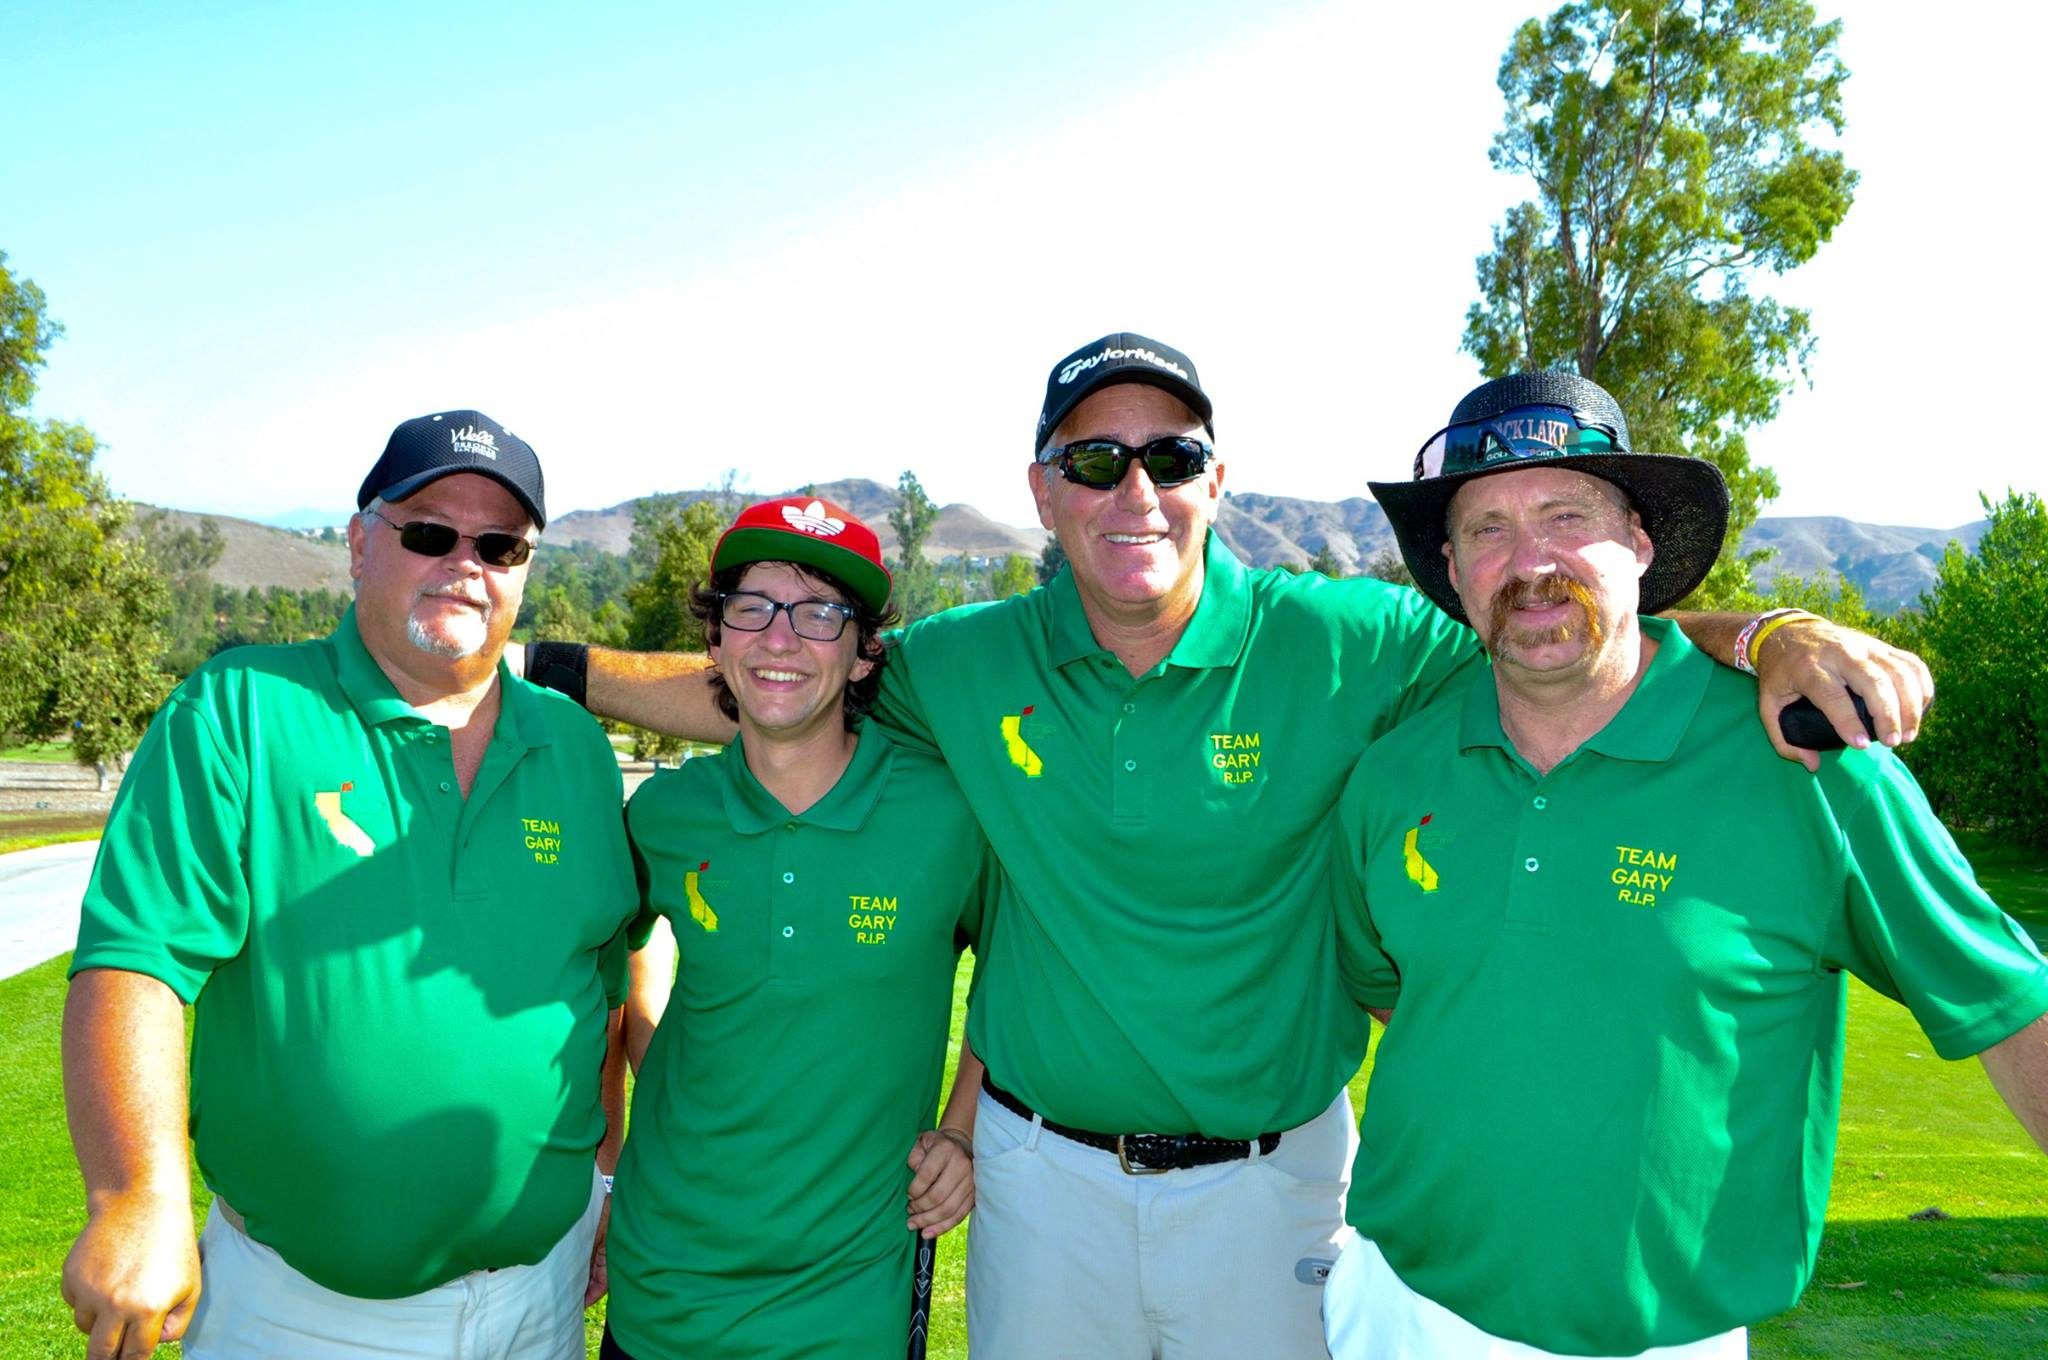 John Gaynor, Scott Britton, John Gaynor, Danny Sampson, Southern California Charity Golf Classic, Team Gary RIP